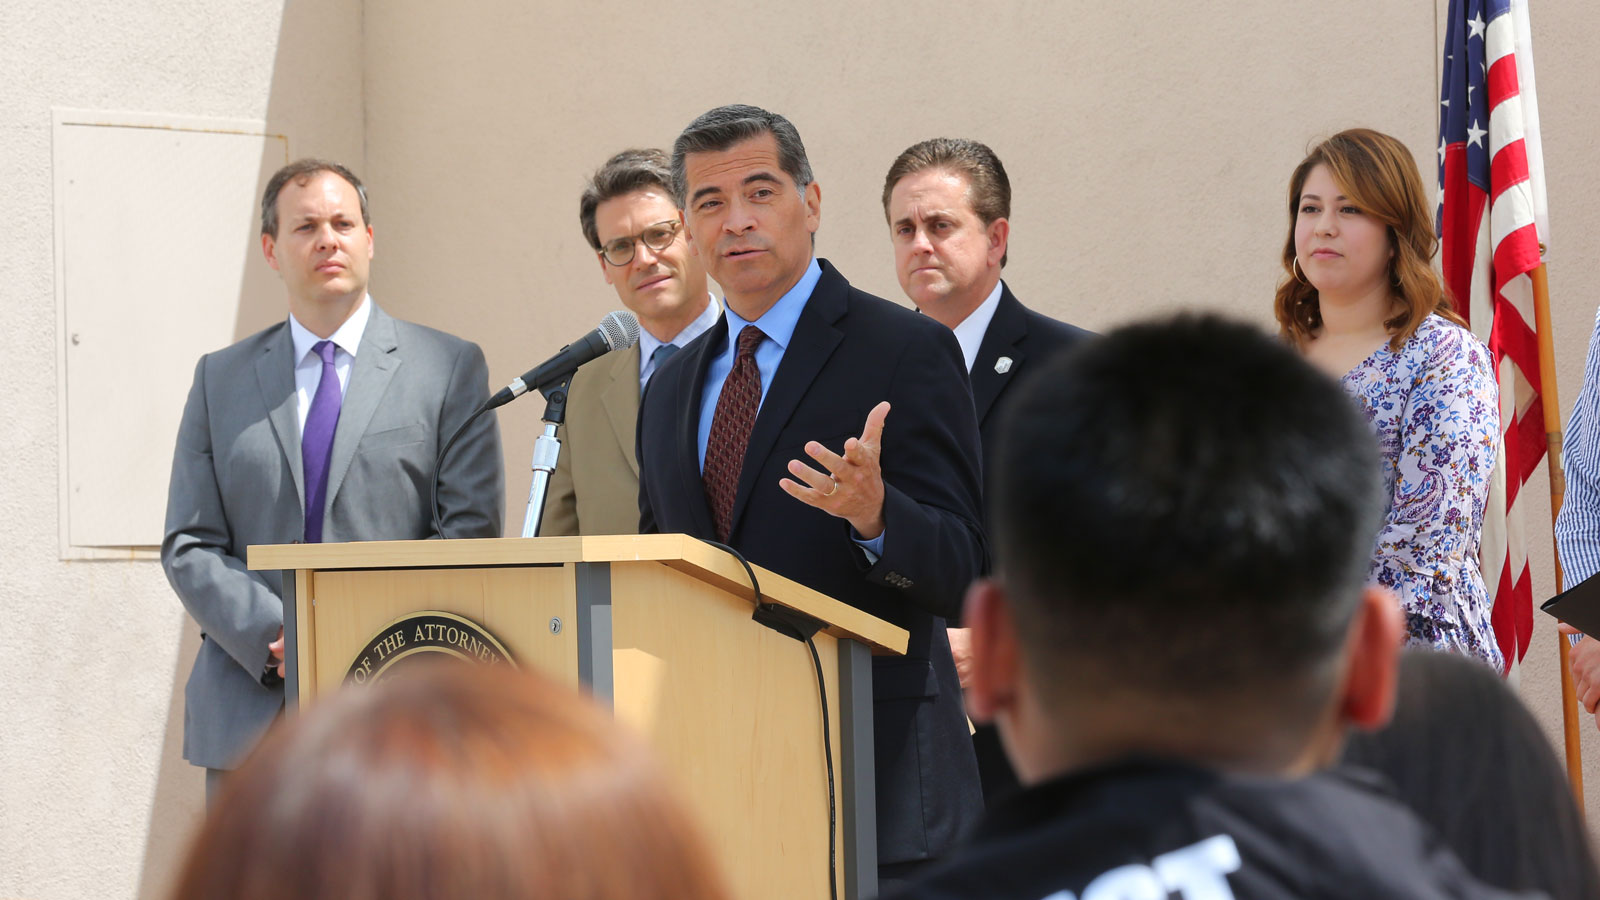 CA. Attorney General Xavier Becerra and Cal State LA Executive Vice President Jose A. Gomez announced their support for DACA.